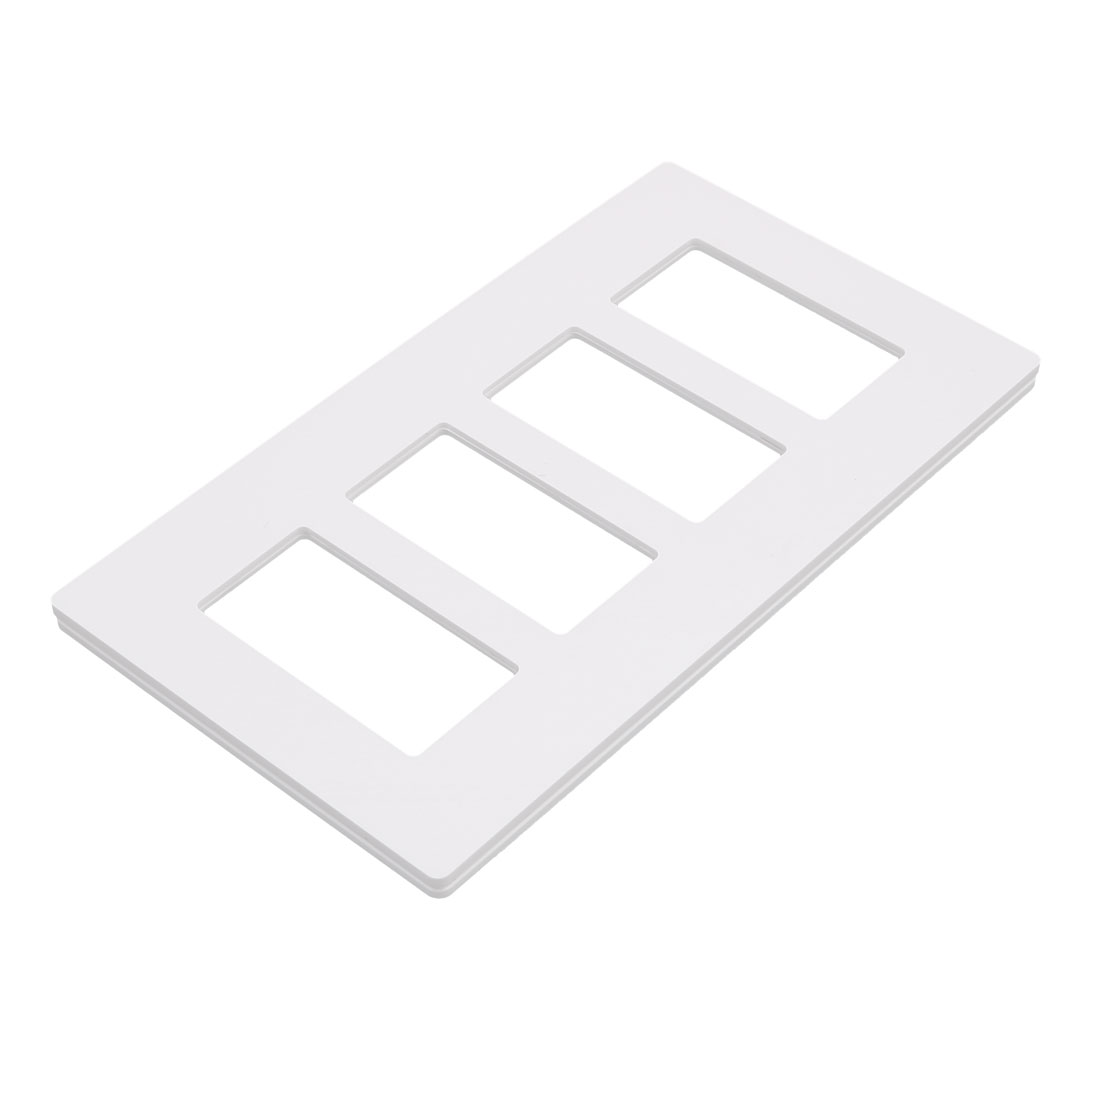 4-Gang Decorator GFCI Device Wallplate Unbreakable Polycarbonate UL Listed White